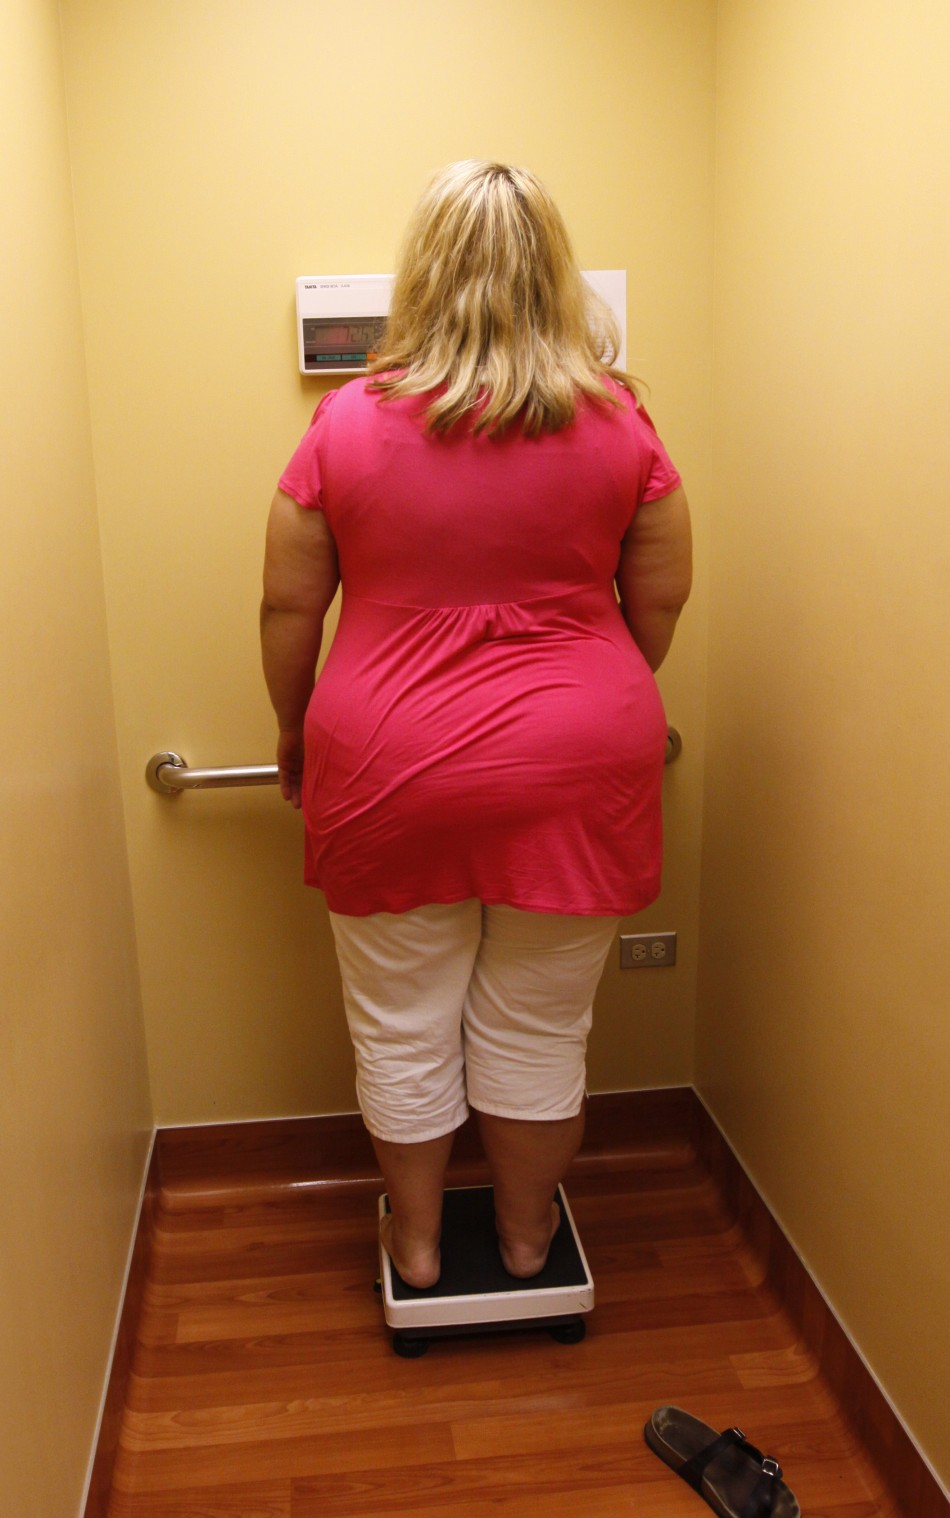 An obese woman looks at her weight - Reuters